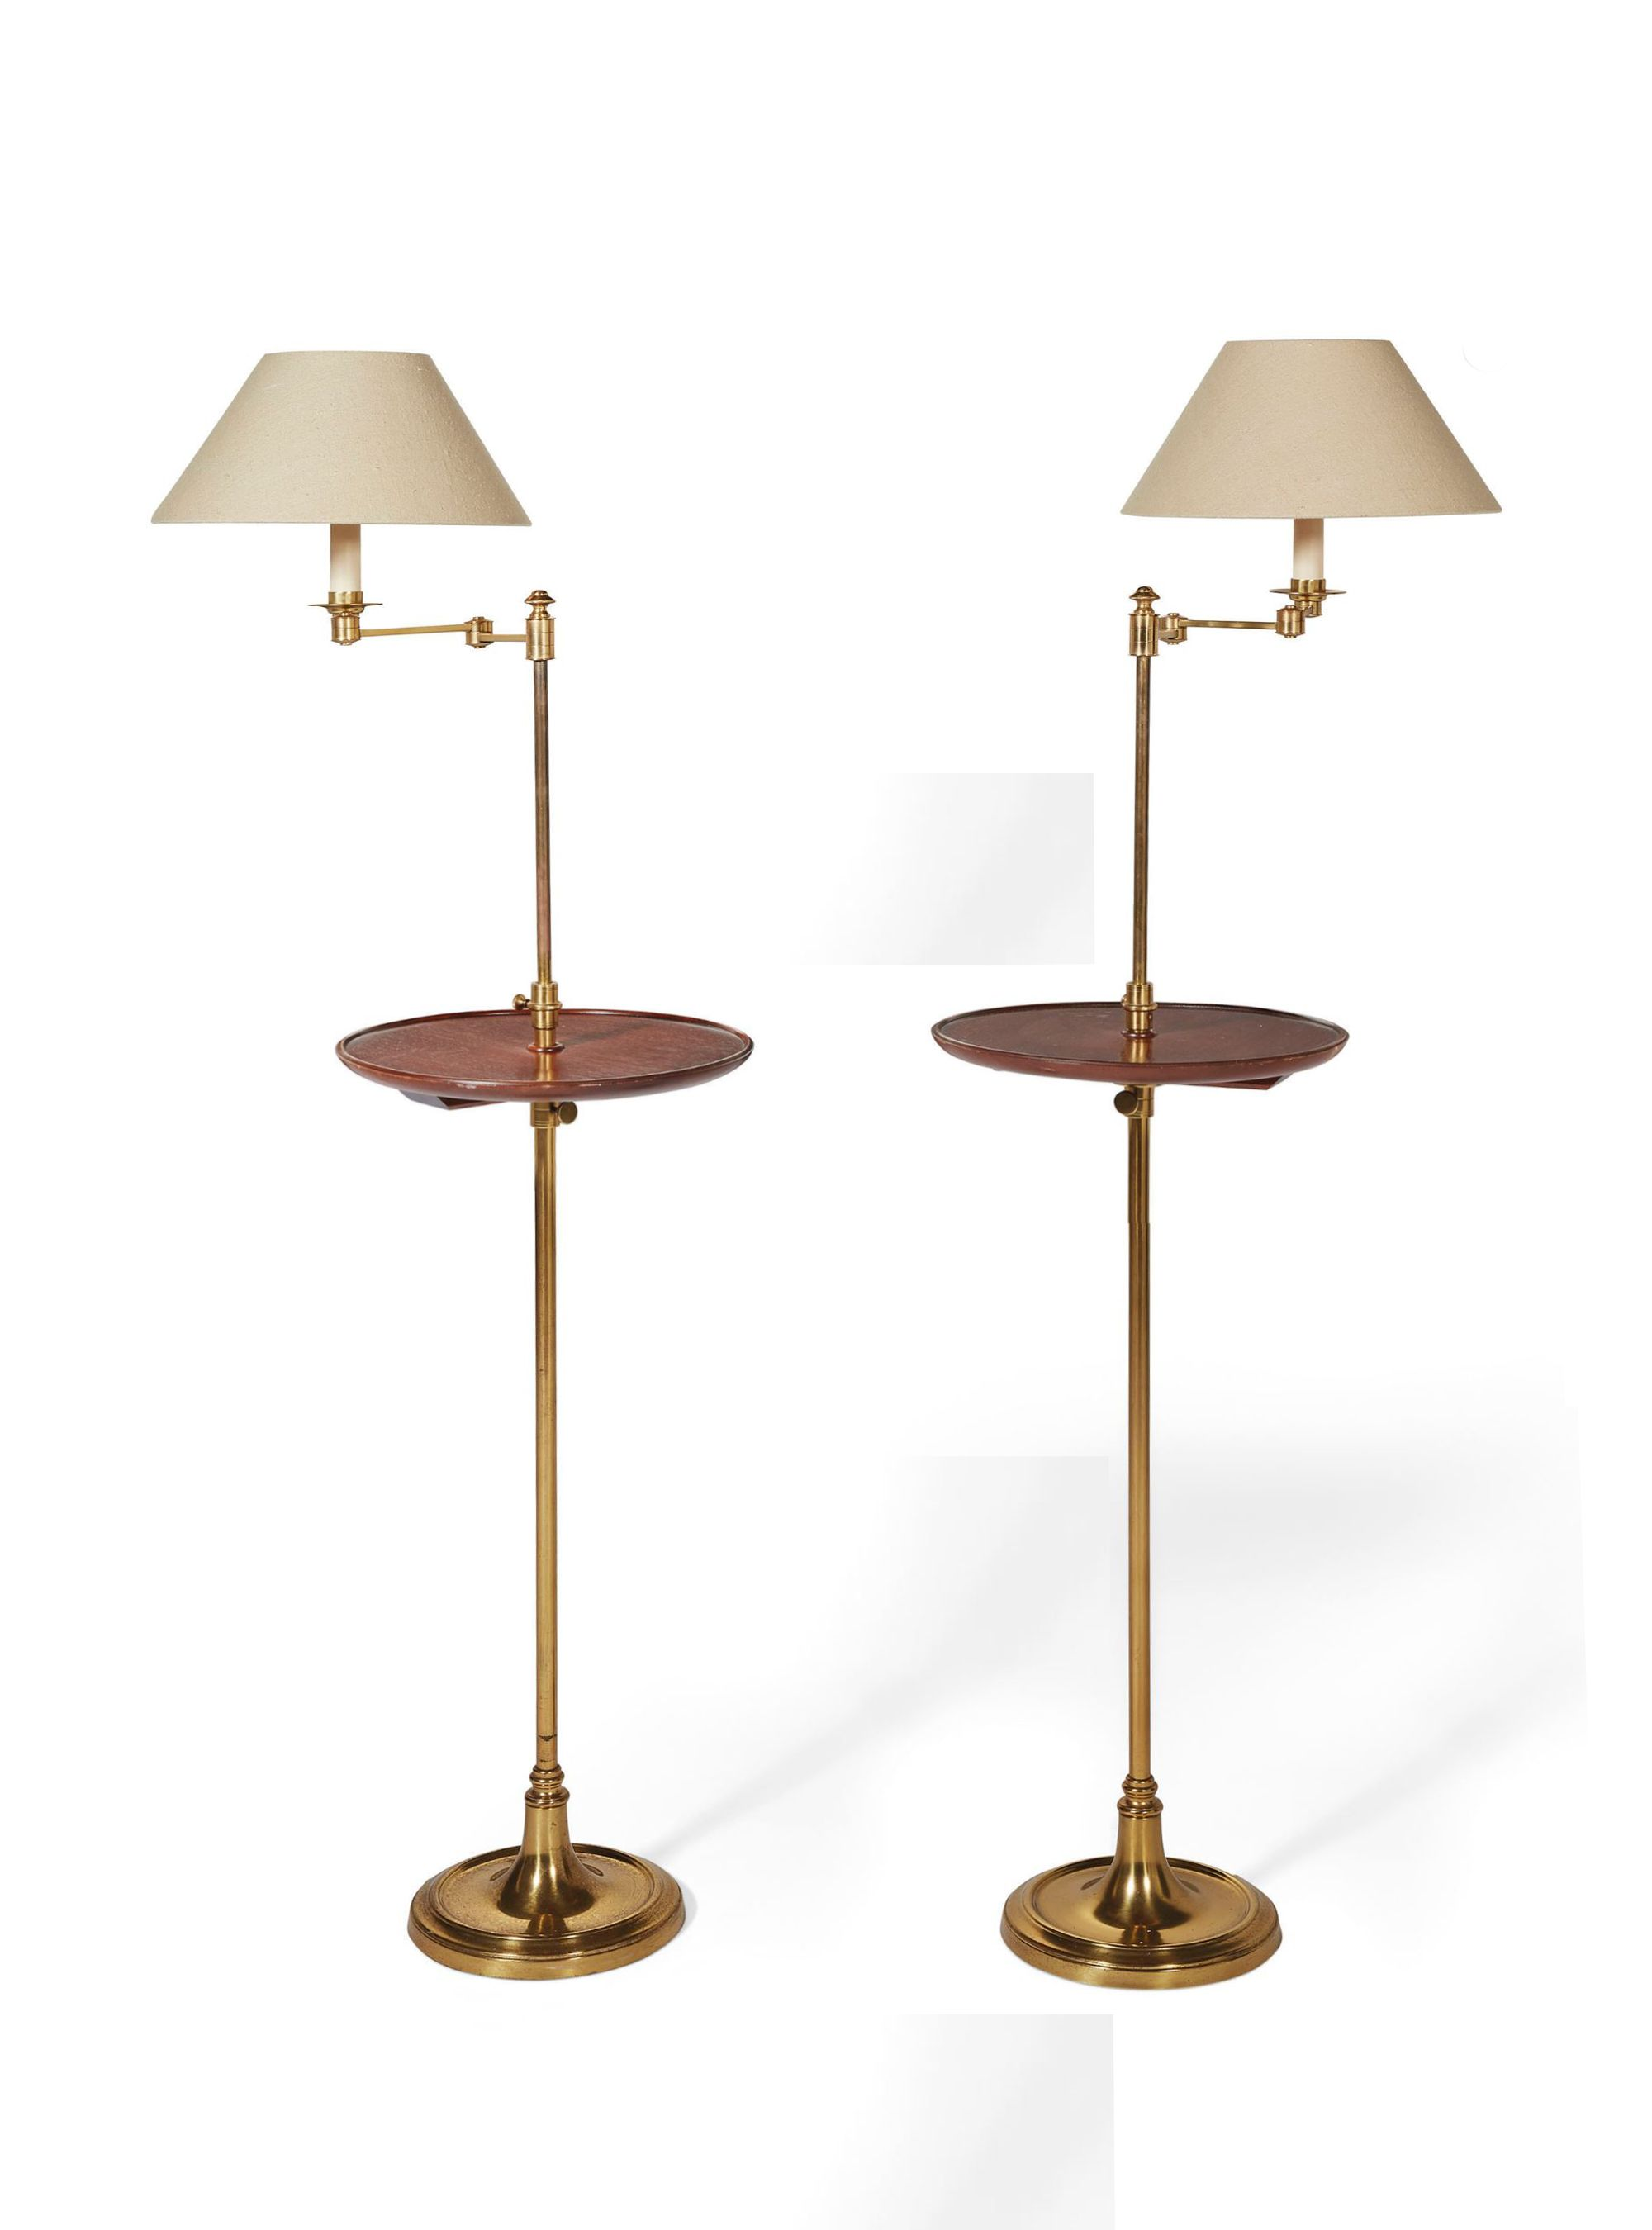 TWO BRASS FLOOR STANDING ADJUSTABLE READING LAMPS Rich